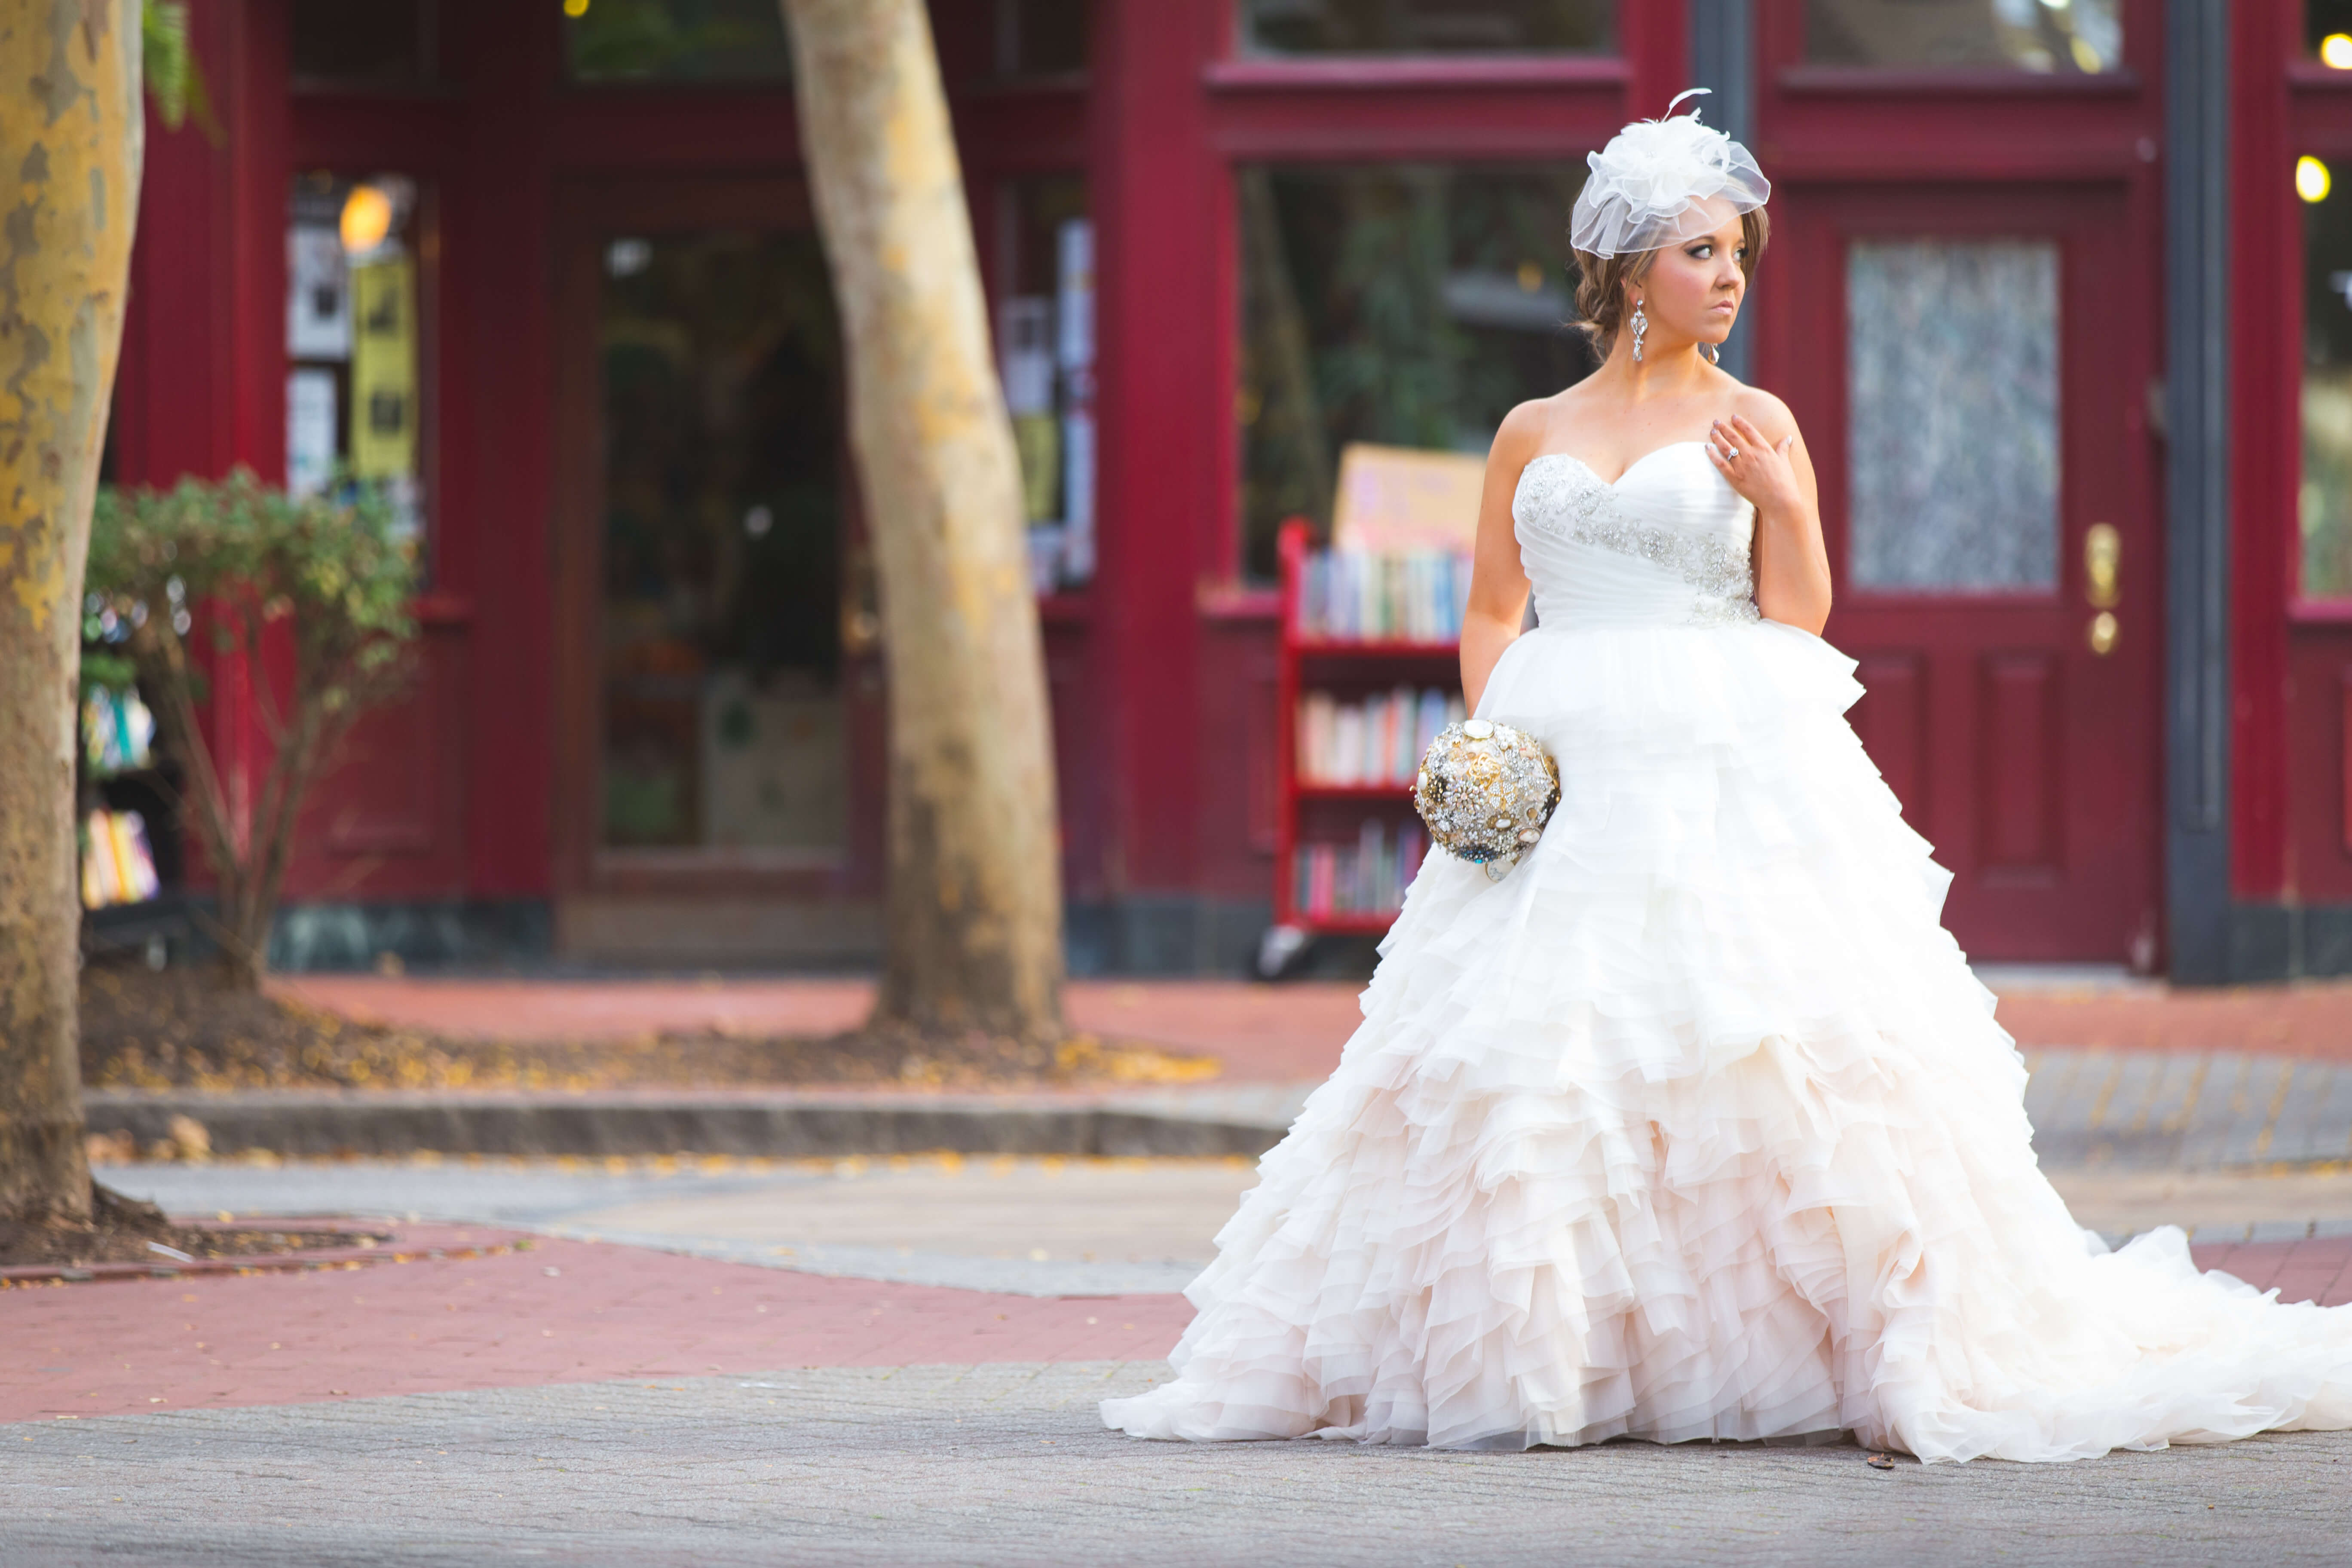 Lindsay\'s Bridal Session // Charleston, WV - Whitney Morgan Photography